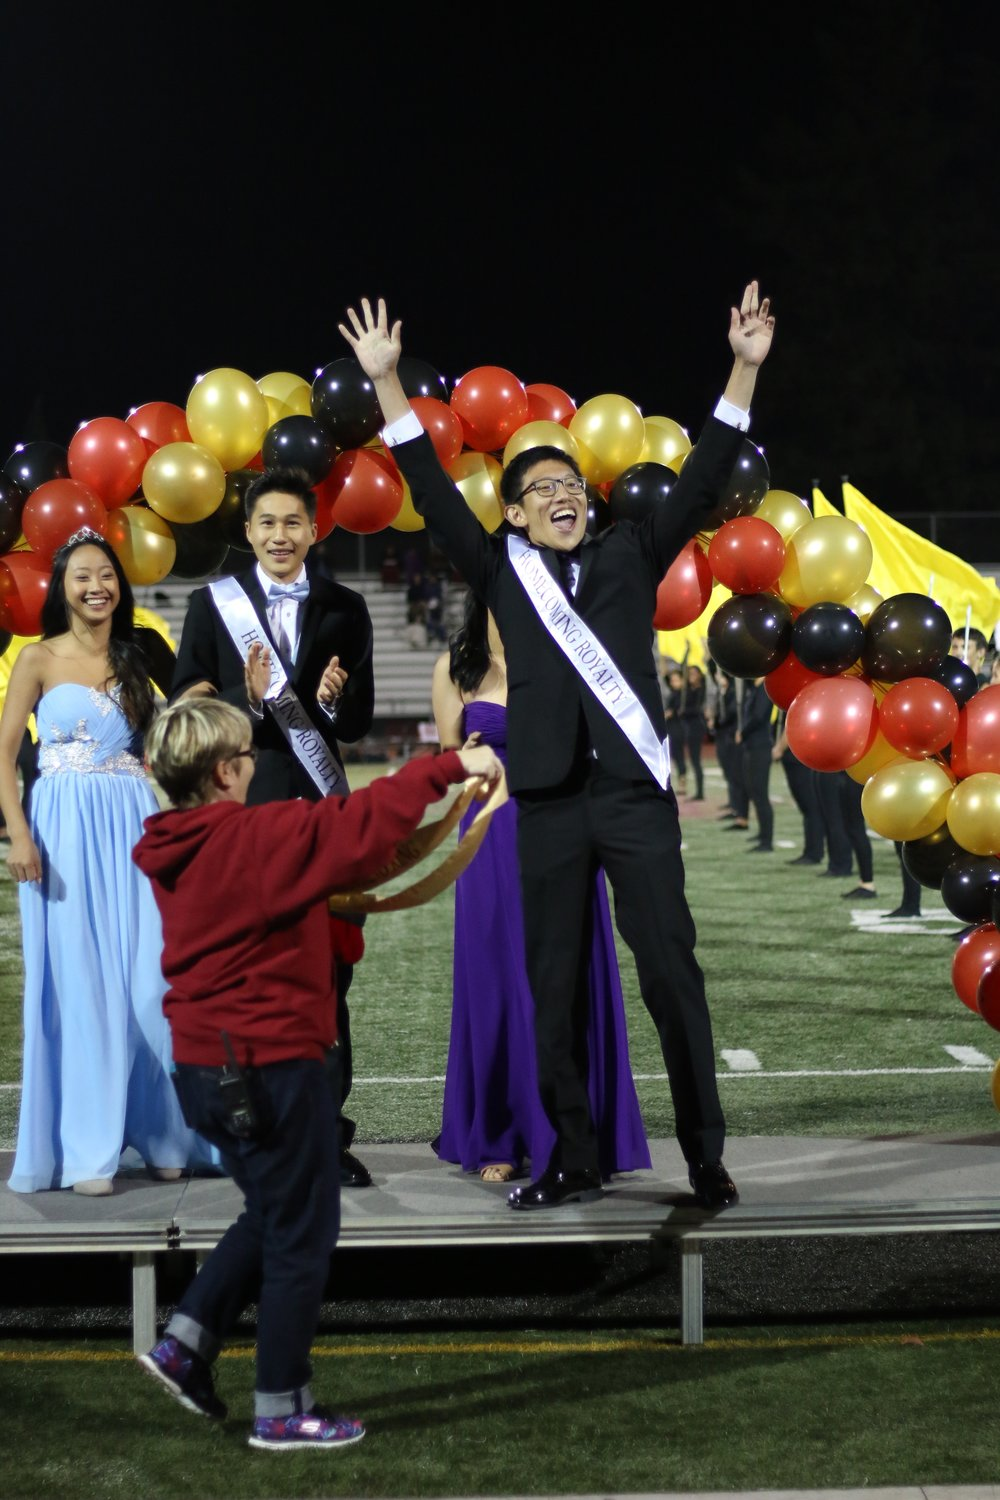 Harrison Liang wins Homecoming King